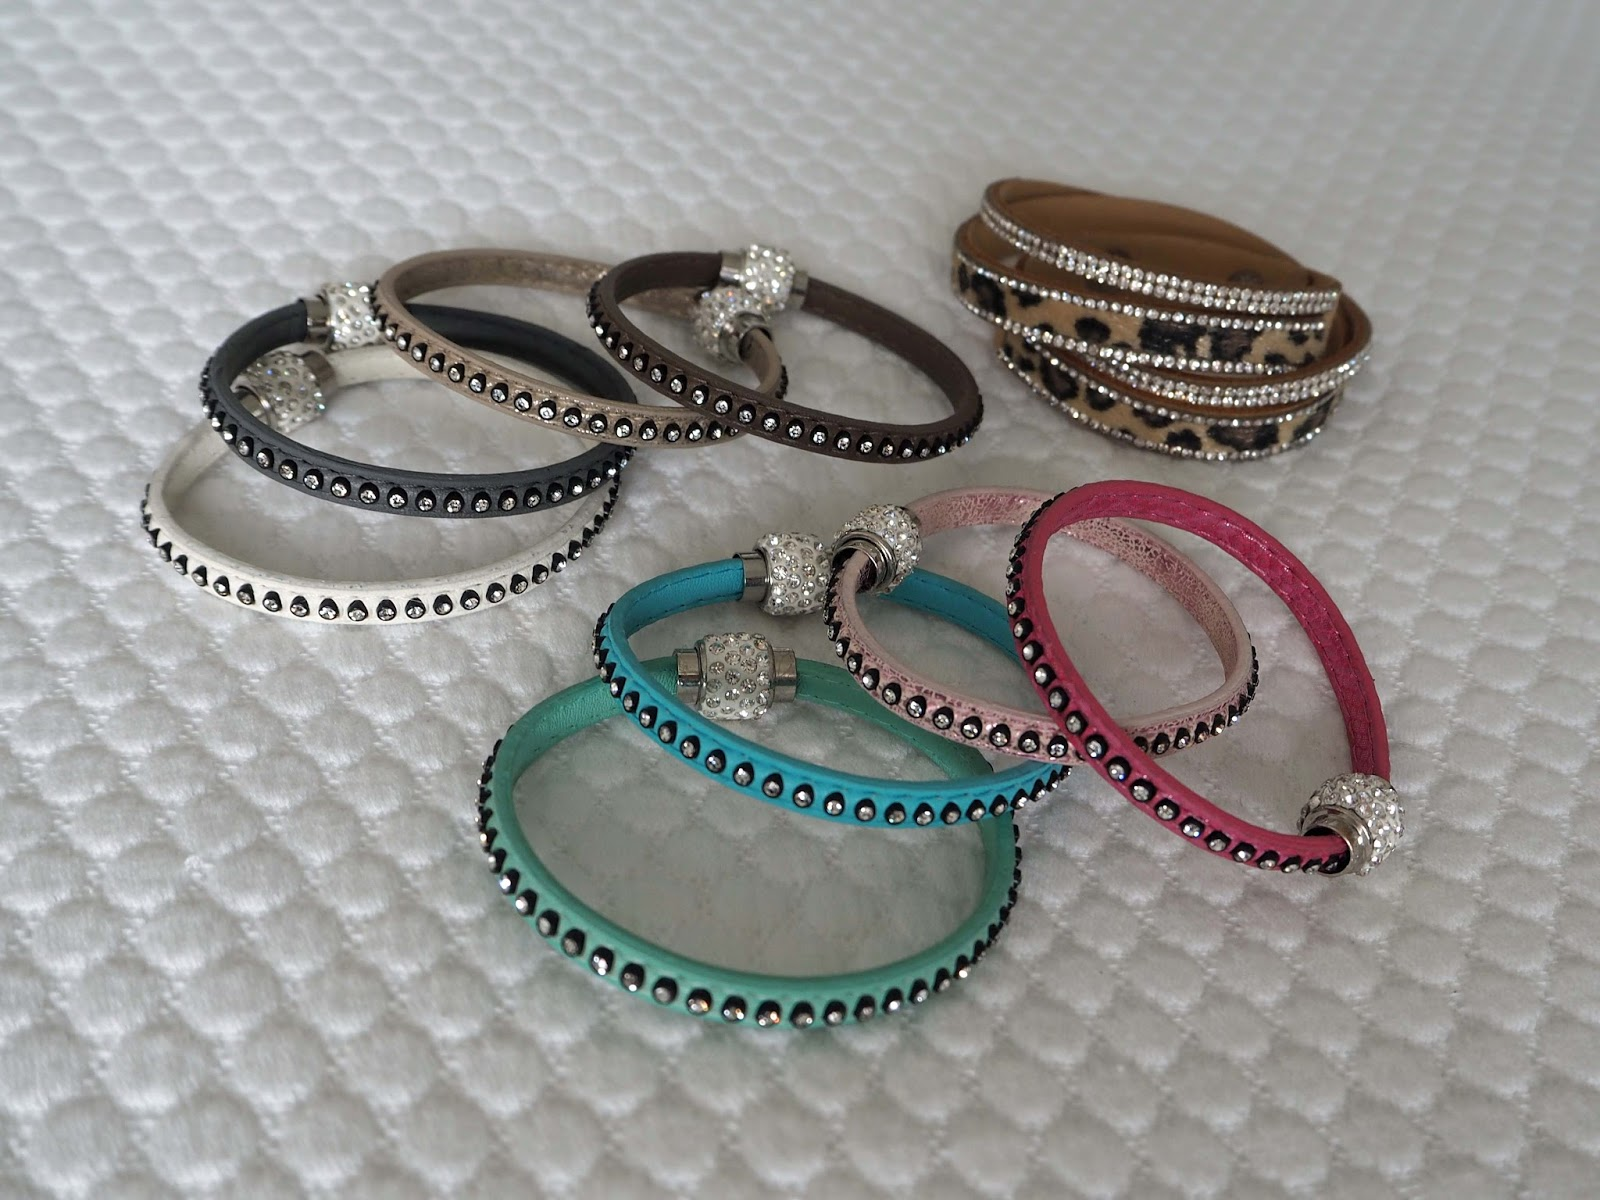 Nerja-holiday-packing-leopared-diamante-clasp-wrap-bracelets